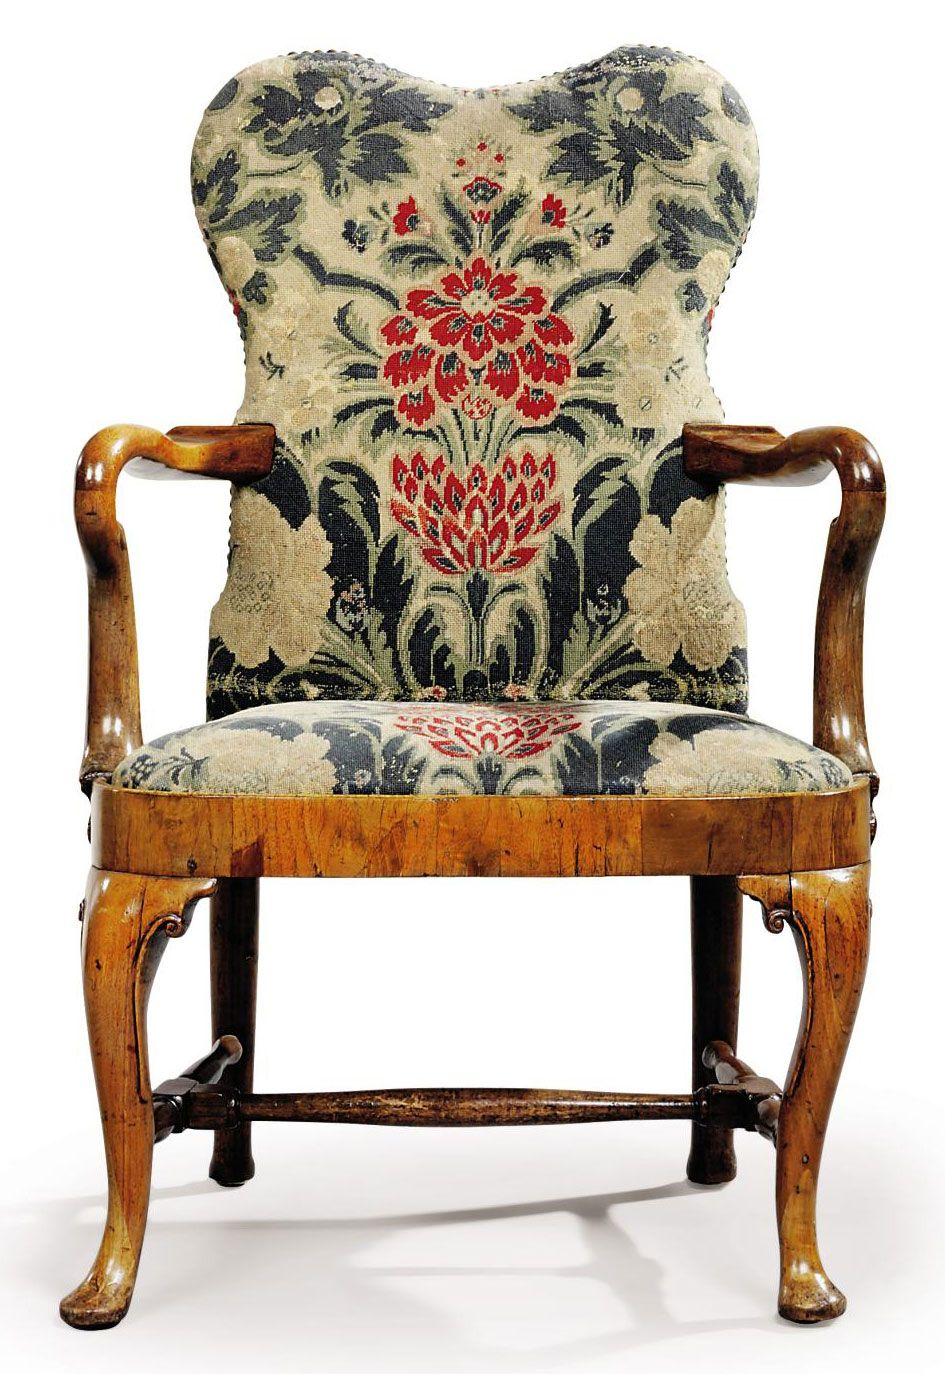 C1720 A Queen Anne Walnut And Needlework Armchair Circa 1720 Price Realised Gbp 15 000 Queen Anne Furniture Armchair Rustic Chair